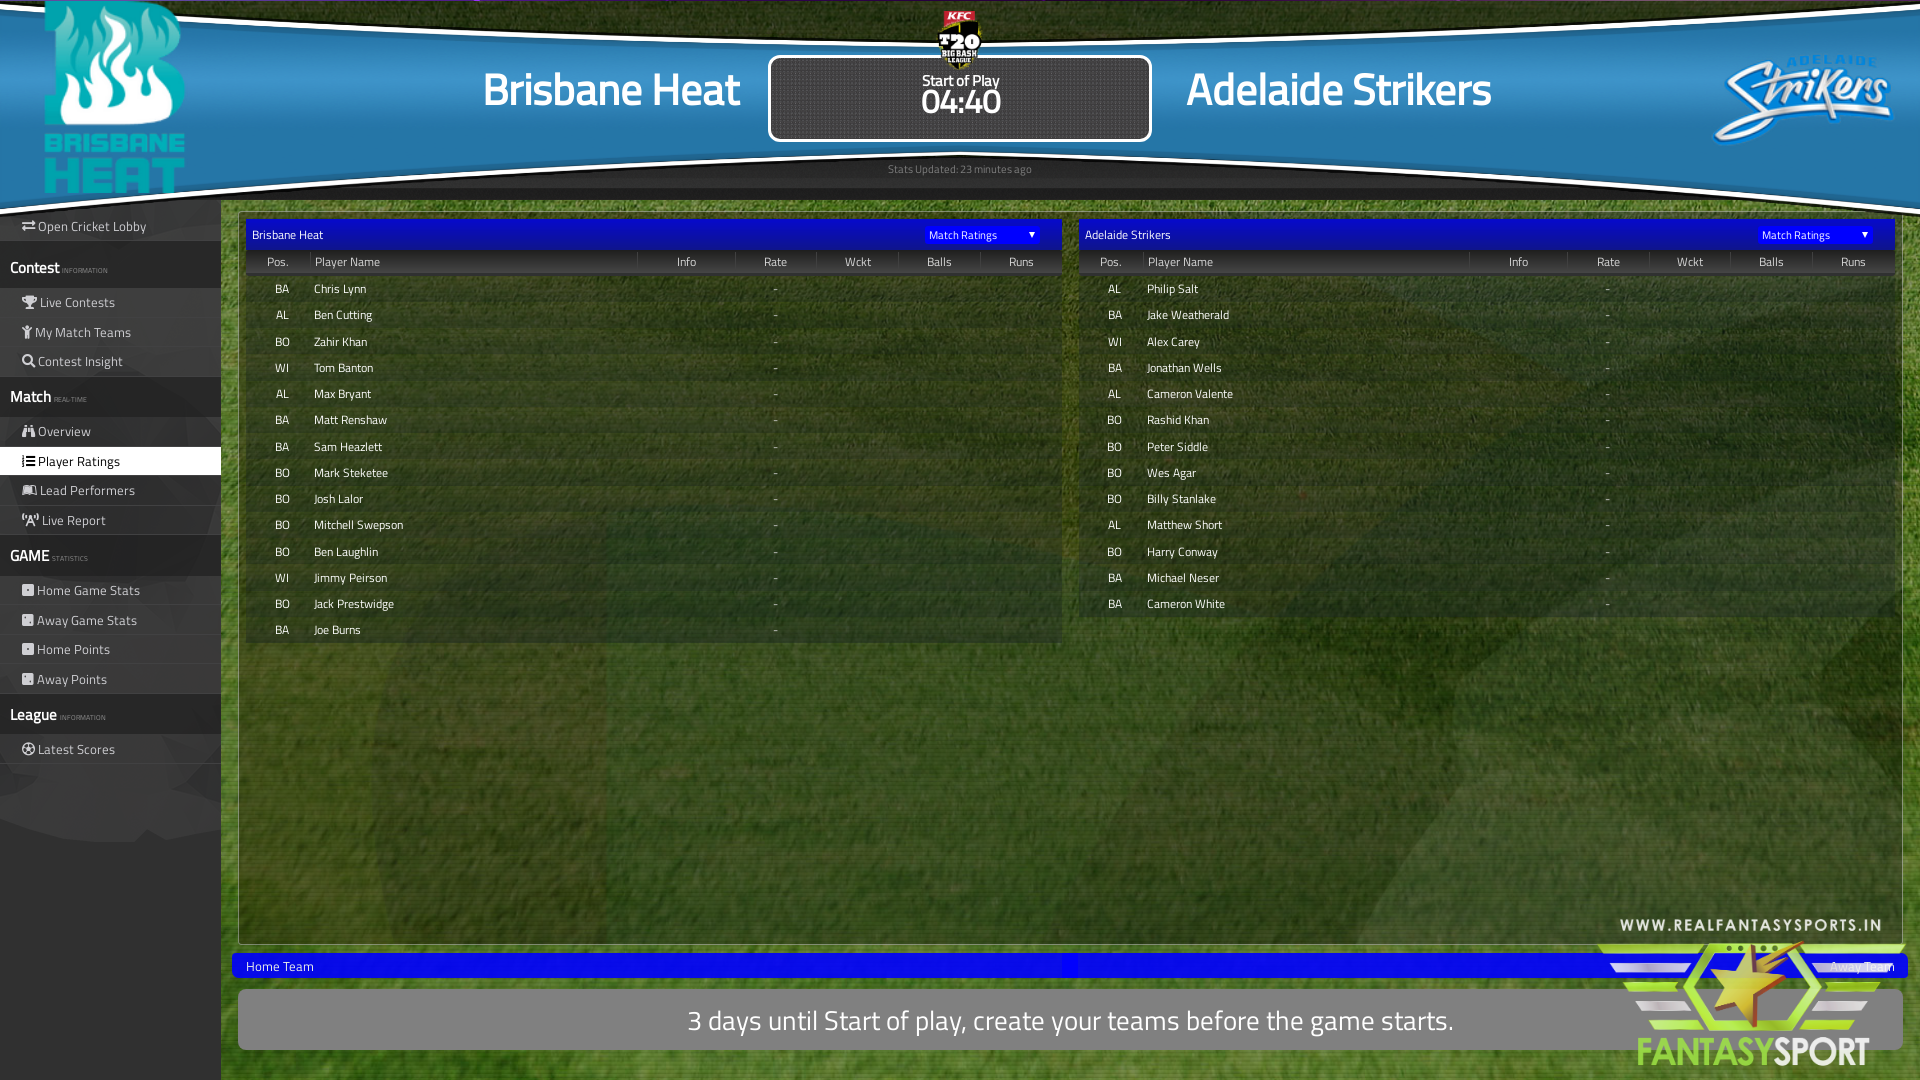 Fantasy Cricket Brisbane Heat Vs Adelaide Strikers